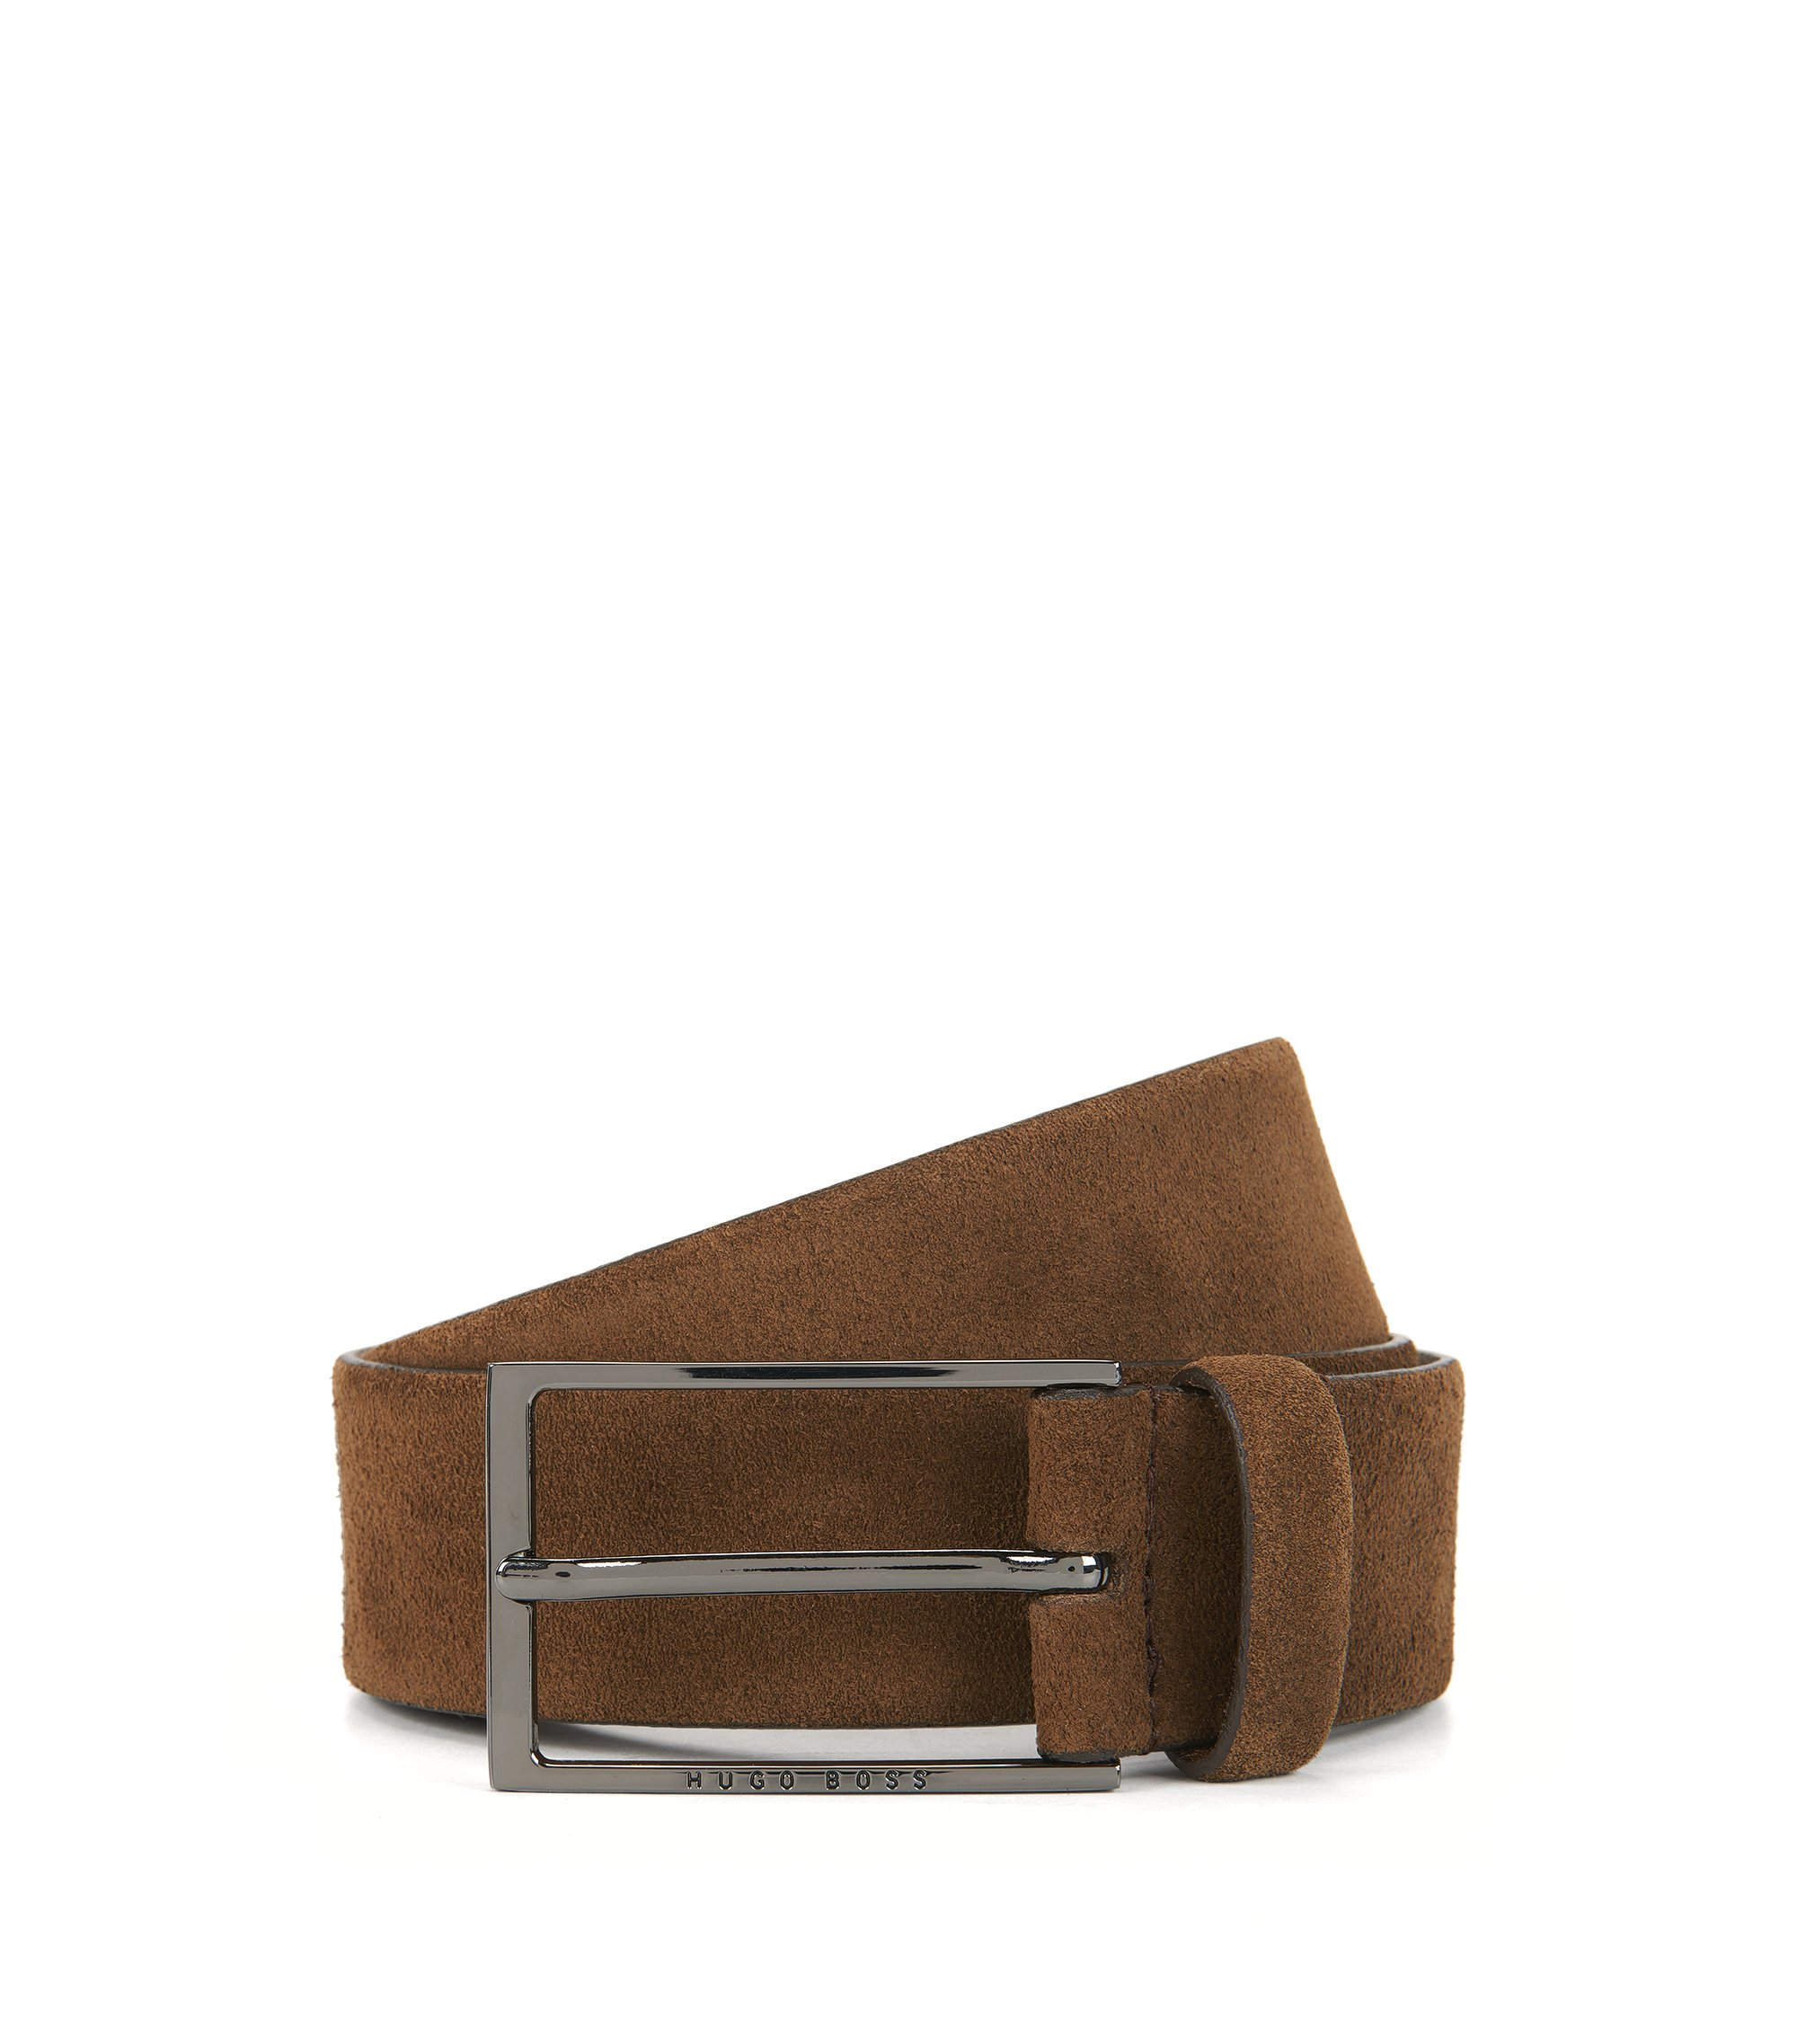 Suede Belt | Calindo Sz Sd, Brown